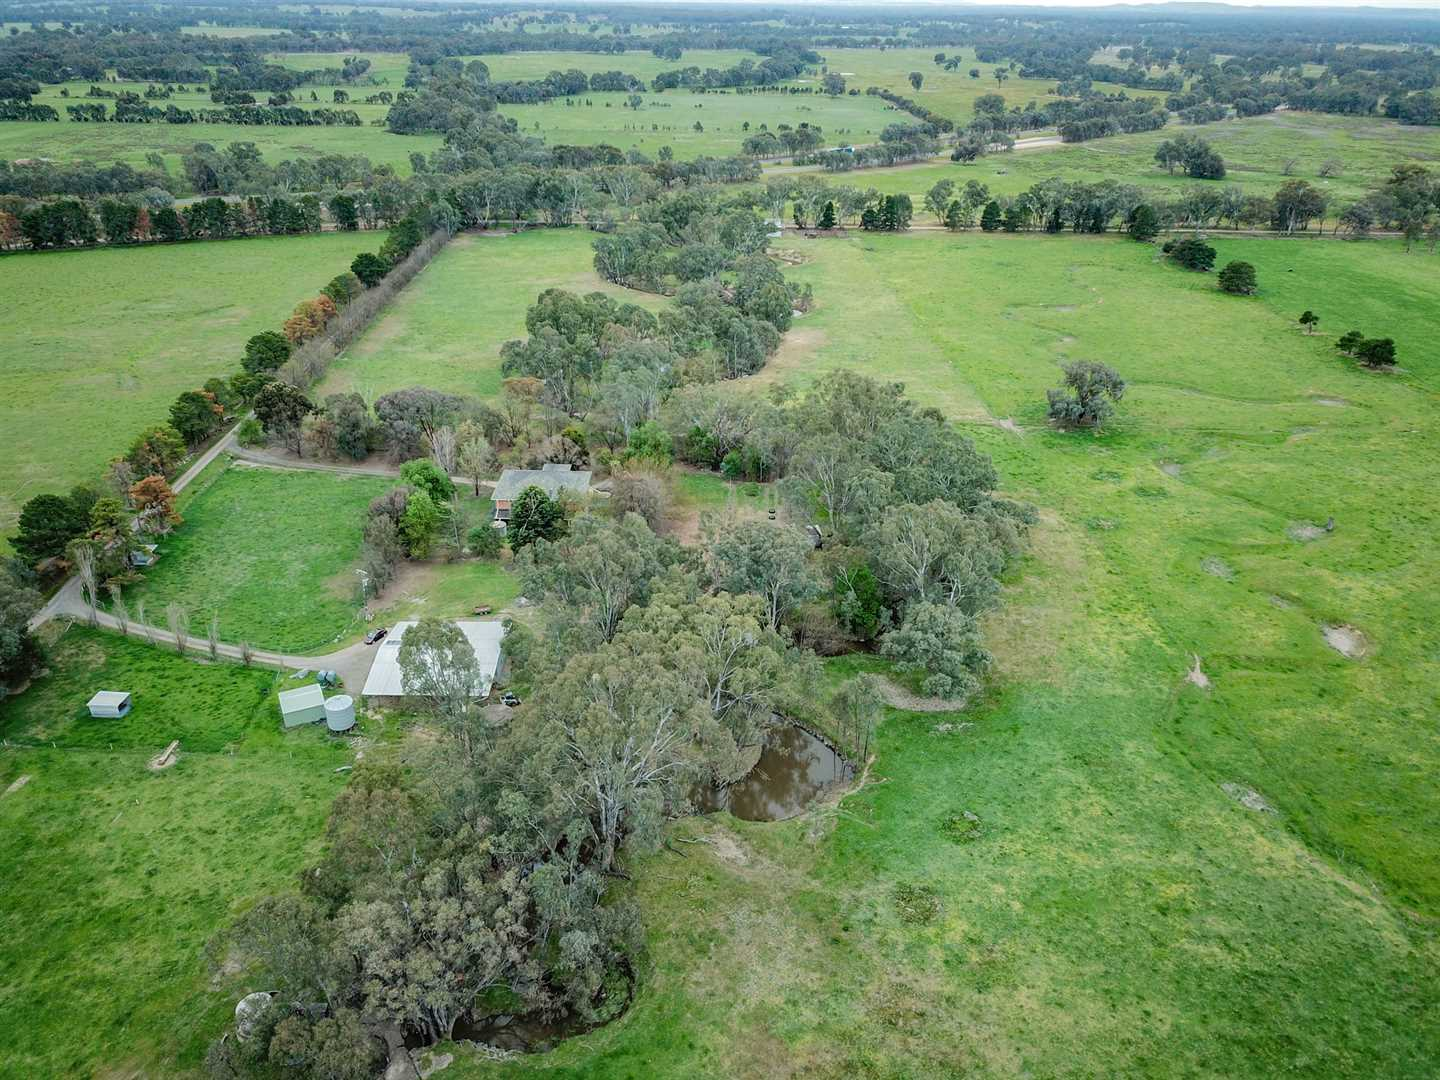 Aerial Creek and House